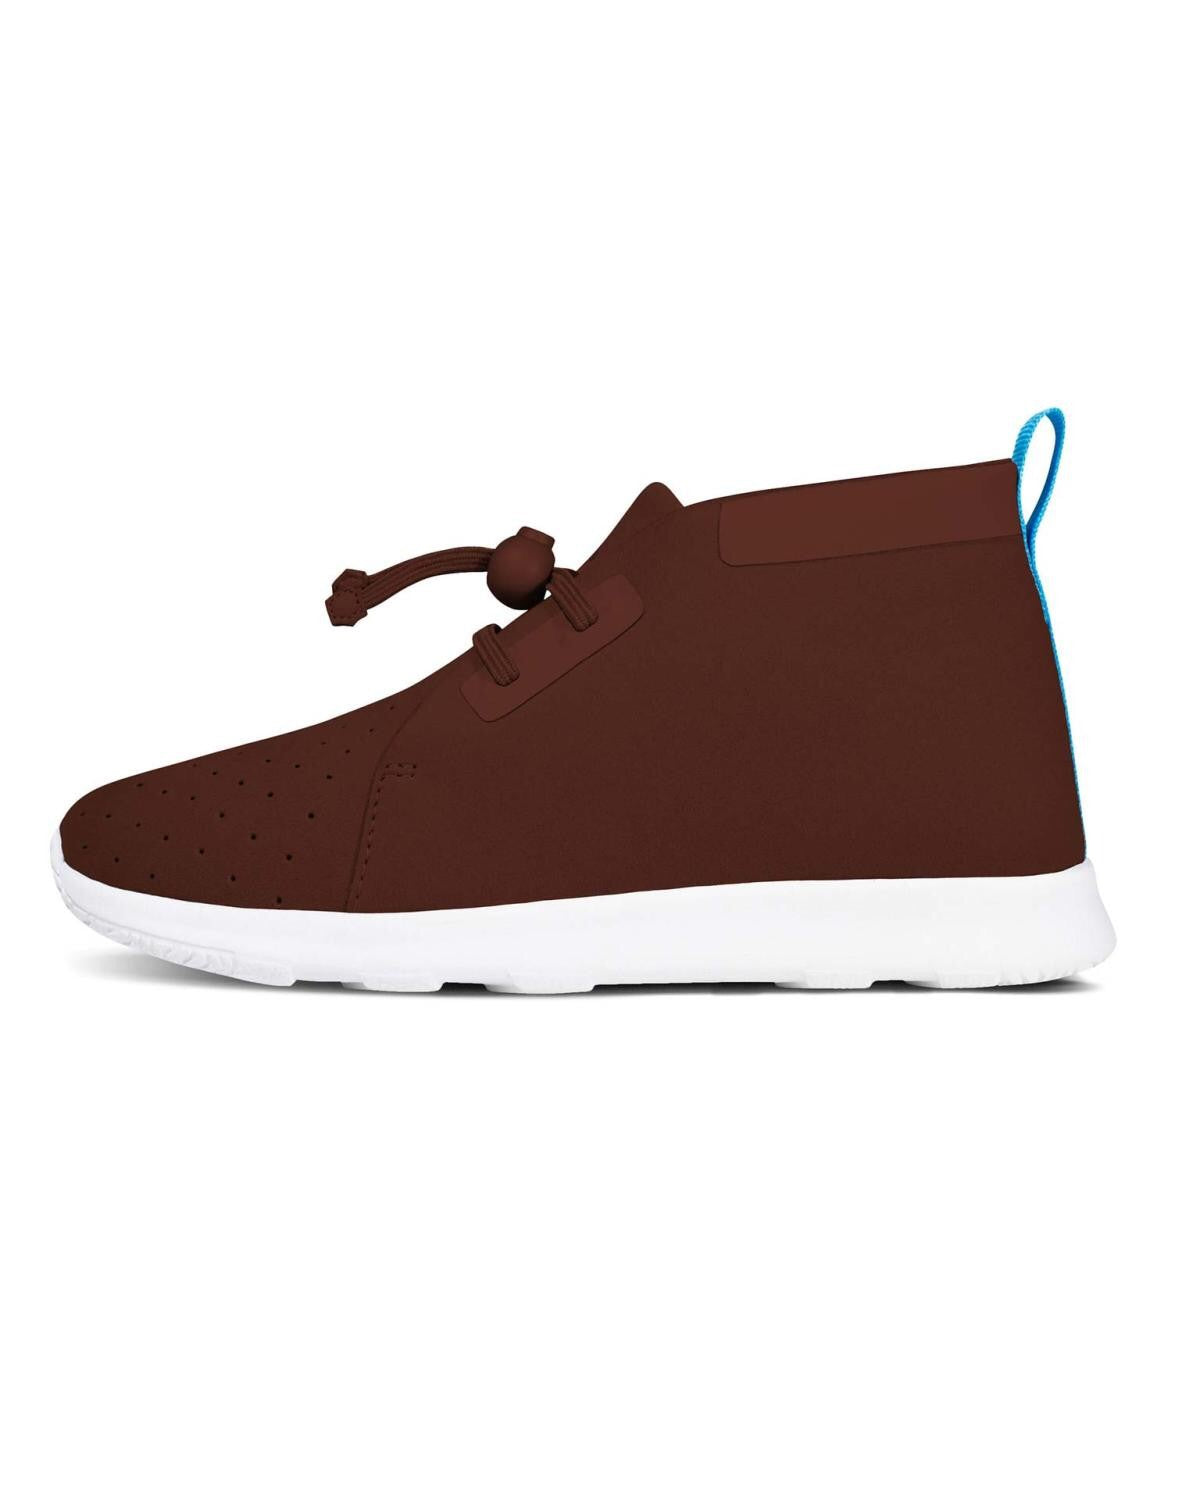 Native shoes app chukka spice red maroon